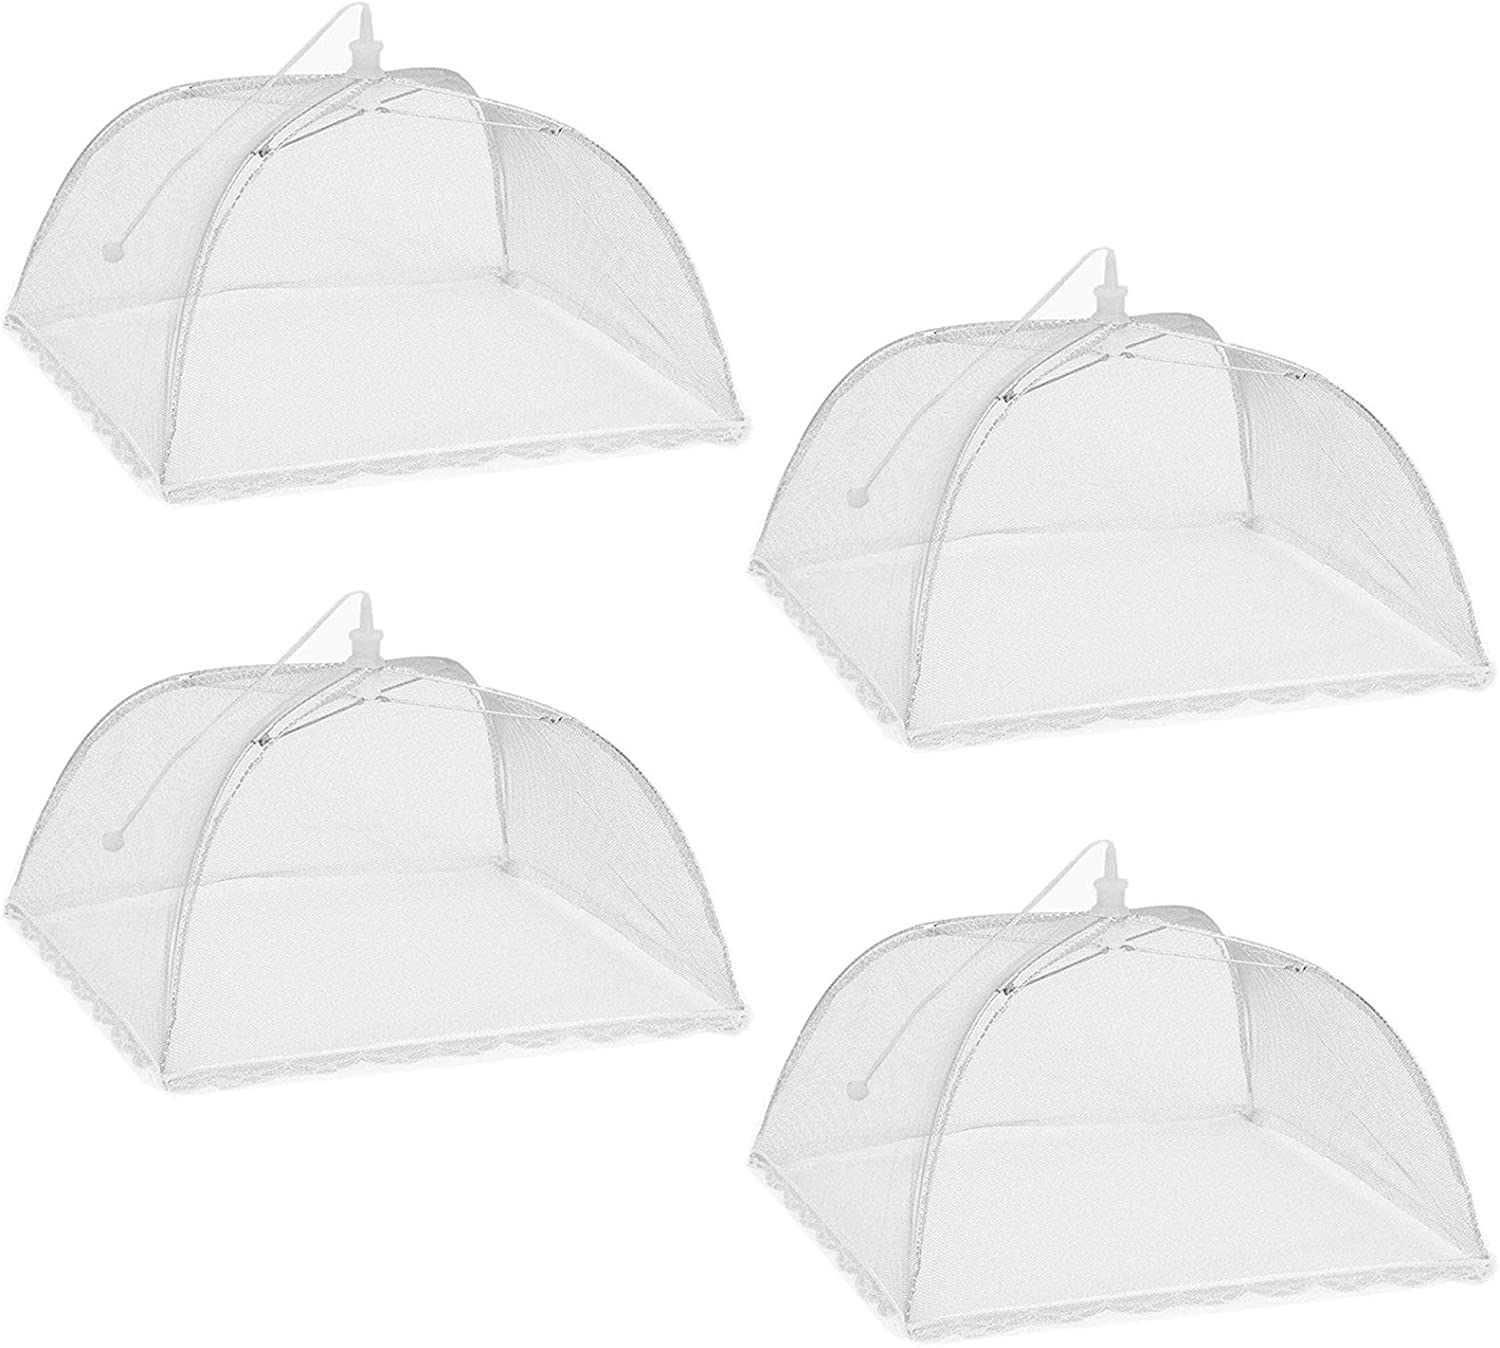 HULISEN 4 Pack Mesh Food Covers, Large Pop-Up Collapsible and Reusable Food Tent Umbrella Screens for Outdoors, Party, Picnic, BBQ, Keep Plant Away from Flies, Mosquitoes